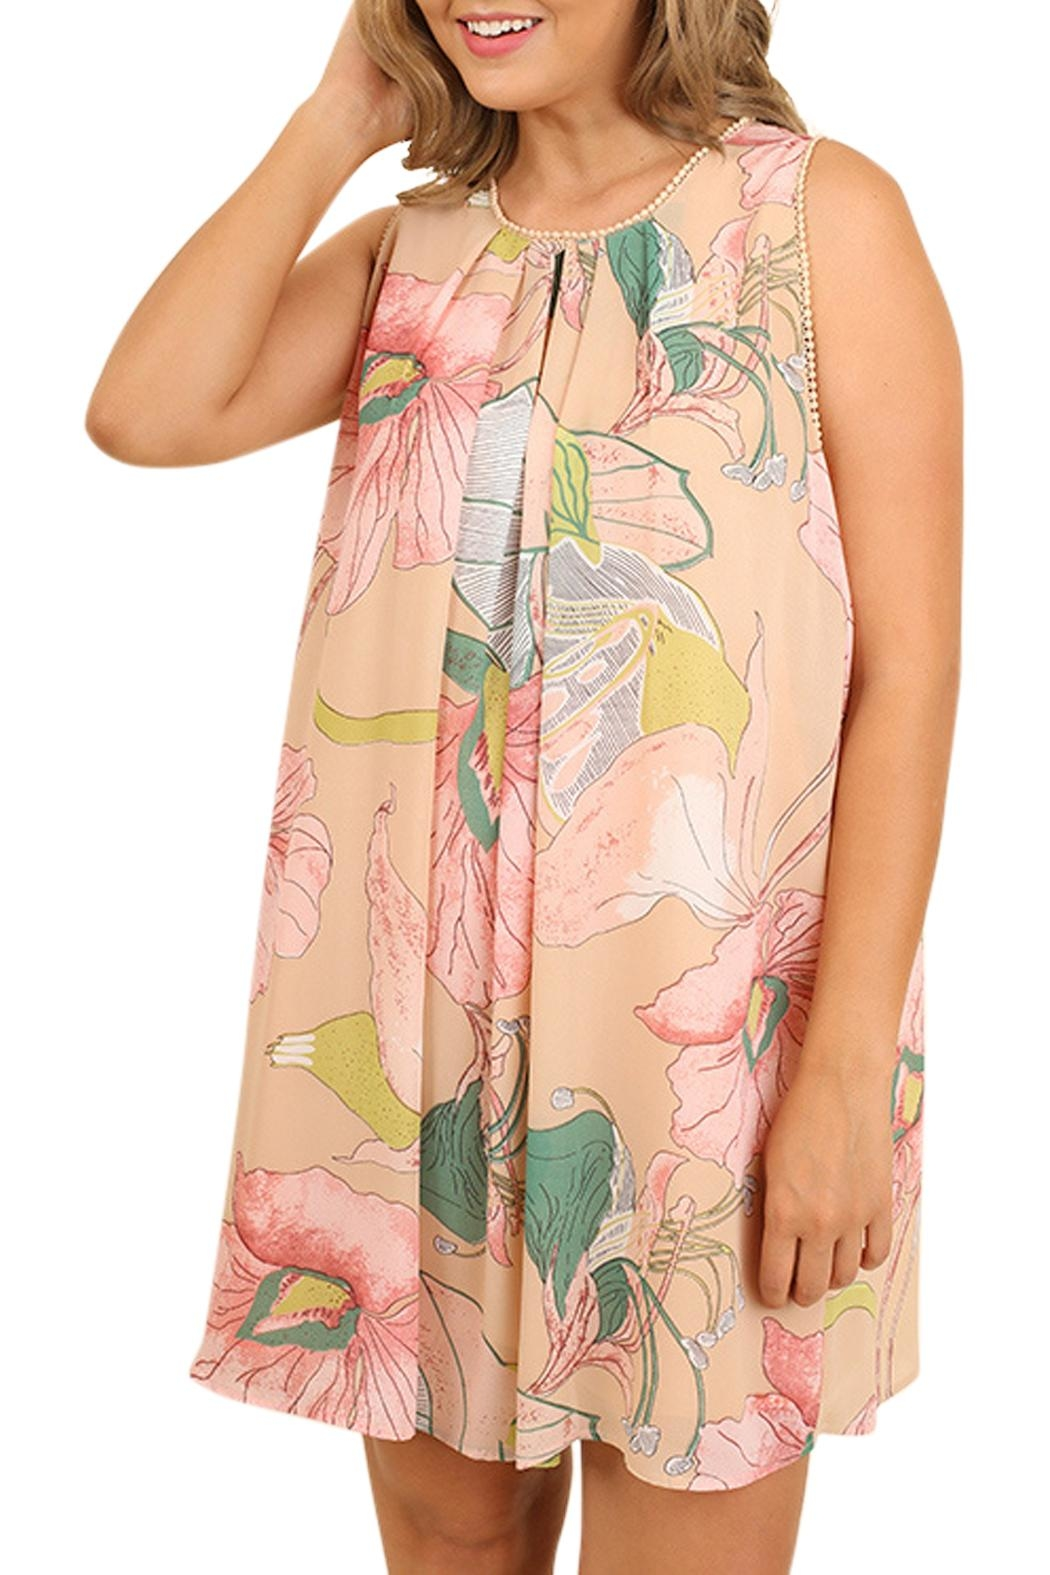 Umgee USA Floral Print Dress - Main Image